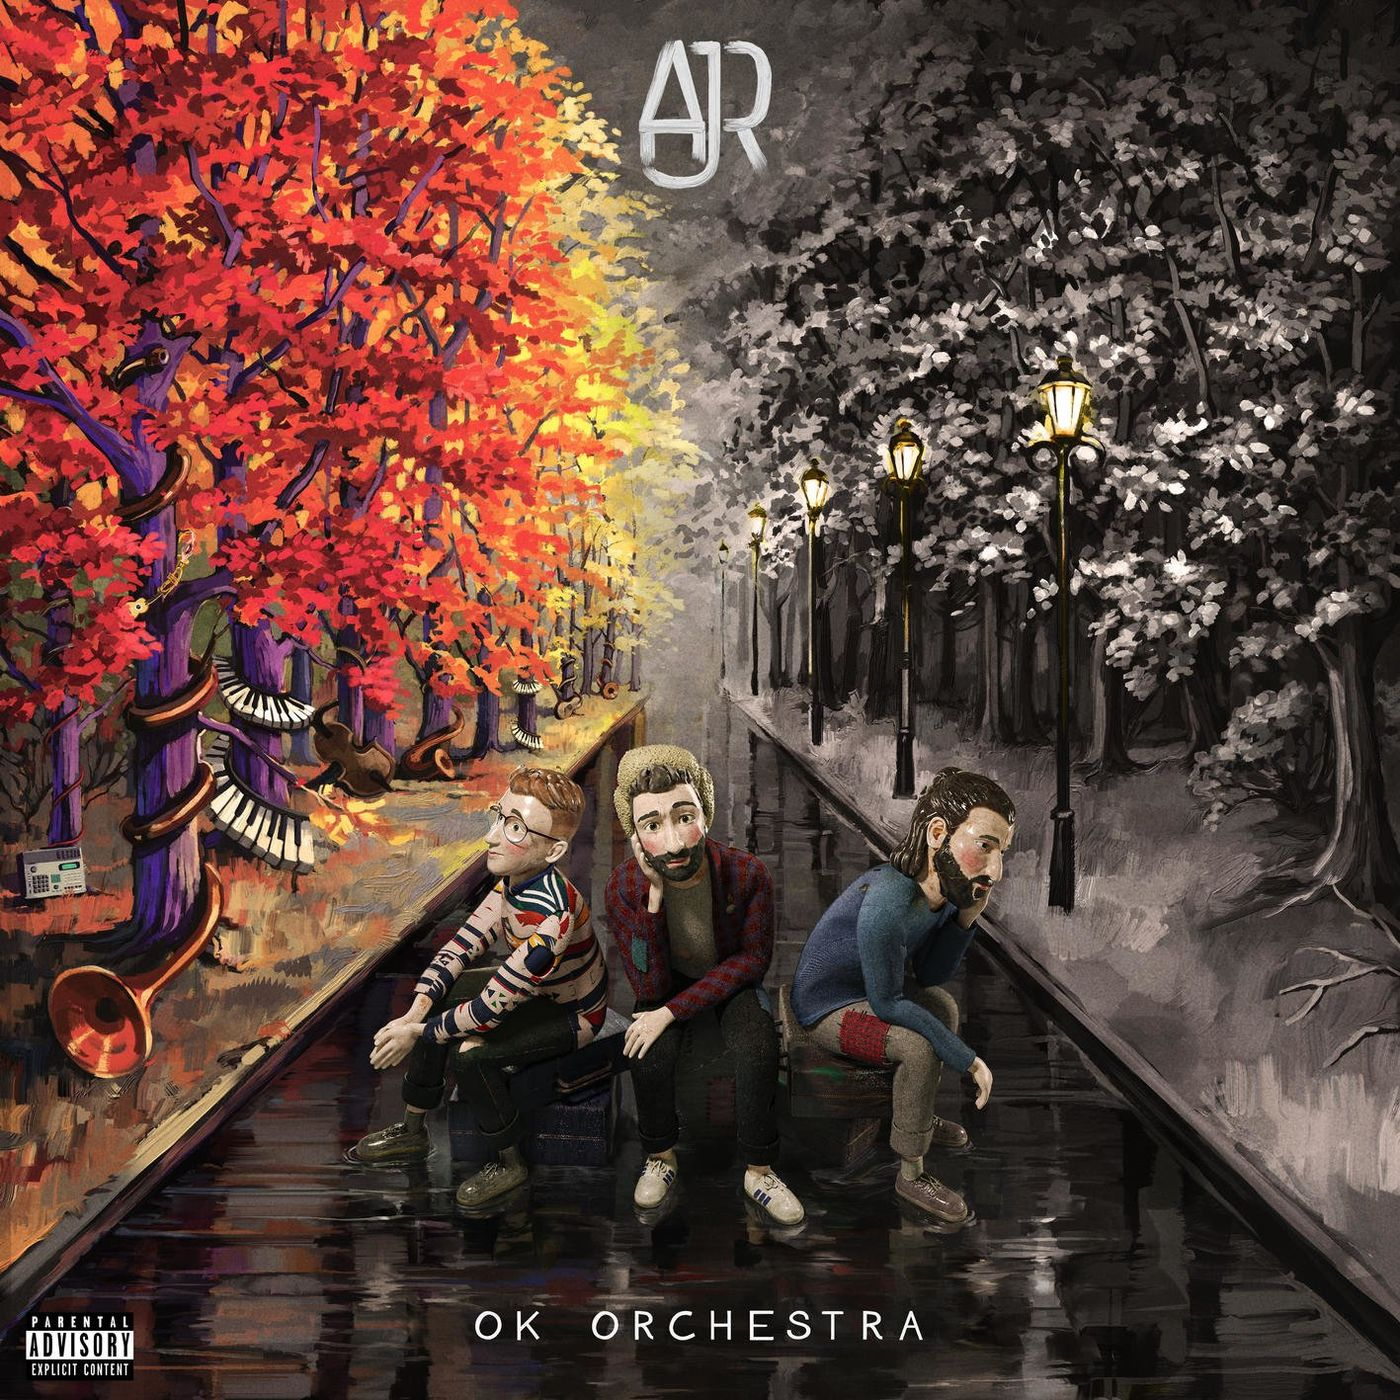 Cover album OK ORCHESTRA (Explicit)